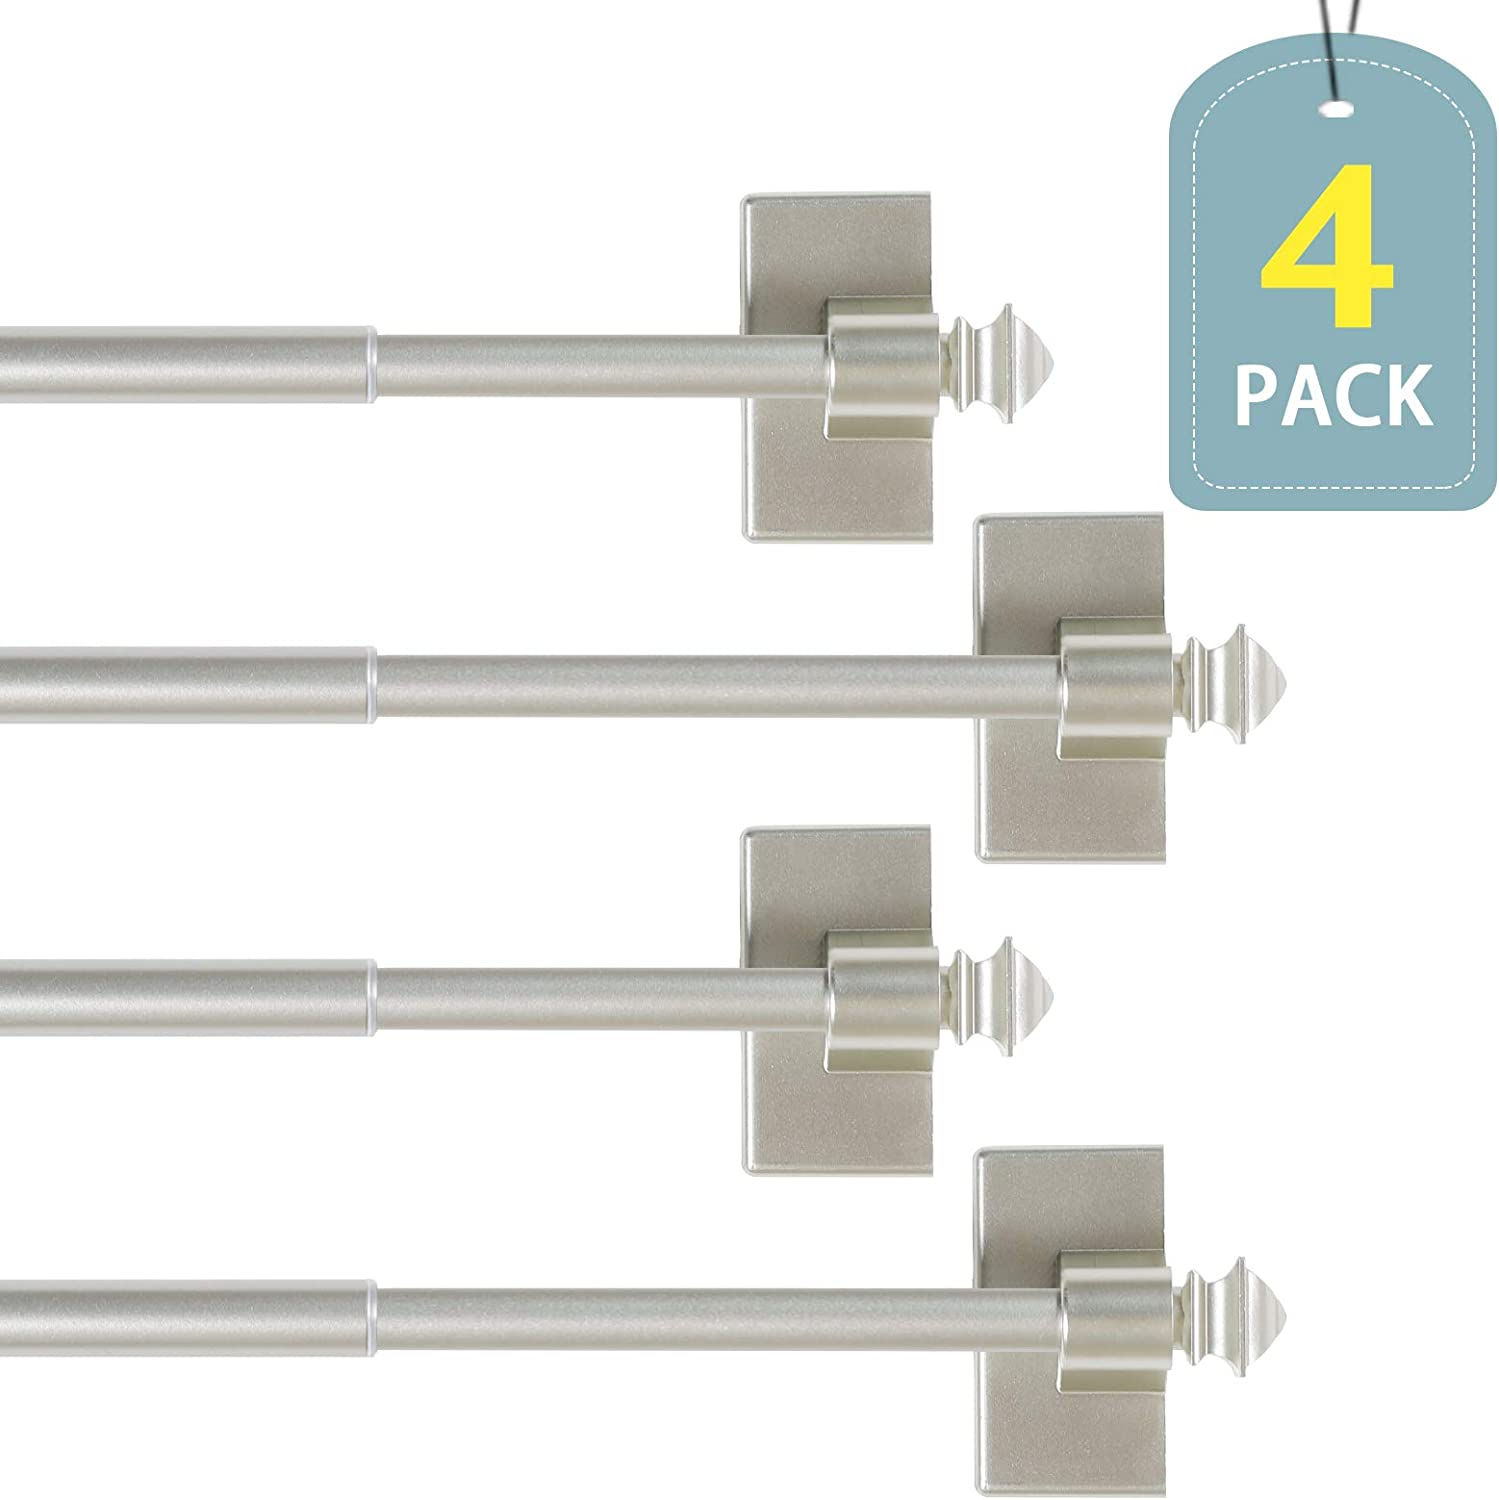 H.VERSAILTEX Magnetic Curtain Rods for Metal Doors Multi-Use Rods for Small Windows Cafe Sidelight and Iron Steel Places, Tool Free with Square Finials (4 Pack, Adjust from 16 to 28 Inch, Nickel)